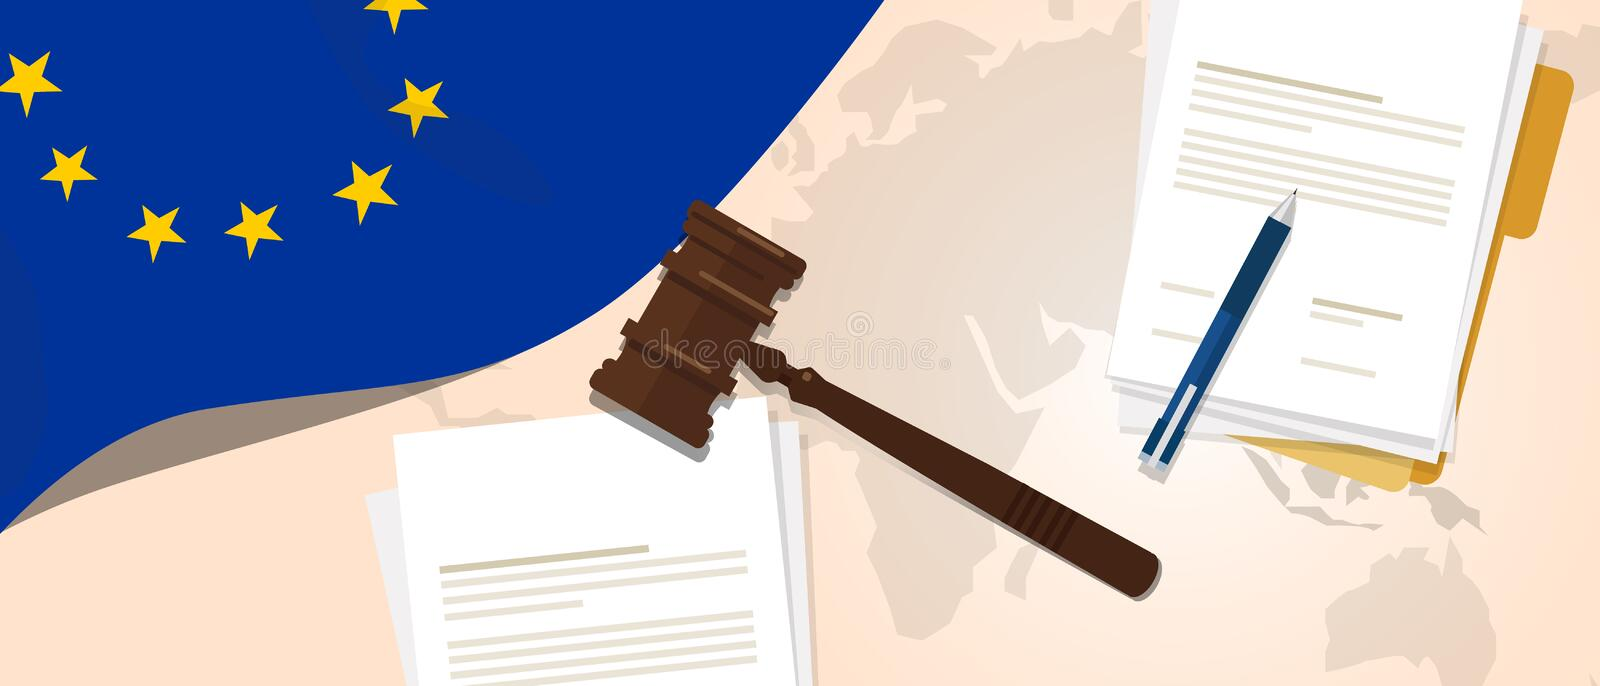 Europe Union EU law constitution legal judgment justice legislation trial concept using flag gavel paper and pen. Vector royalty free illustration